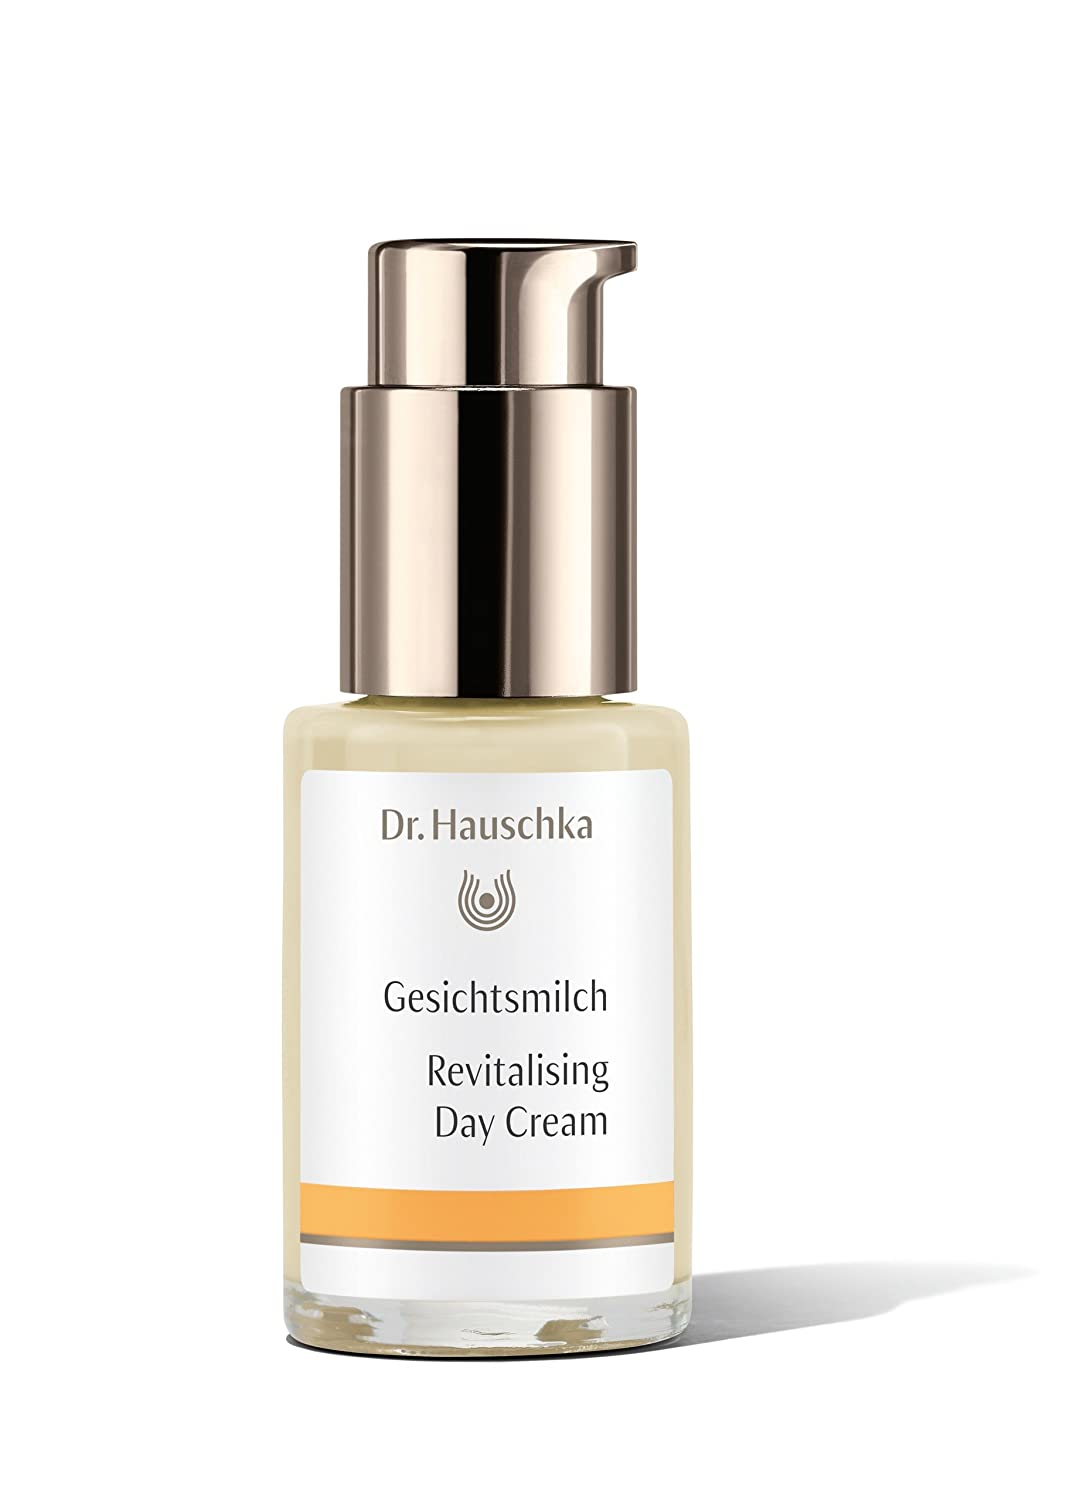 Dr. Hauschka Revitalising Day Cream 30ml EHA0105